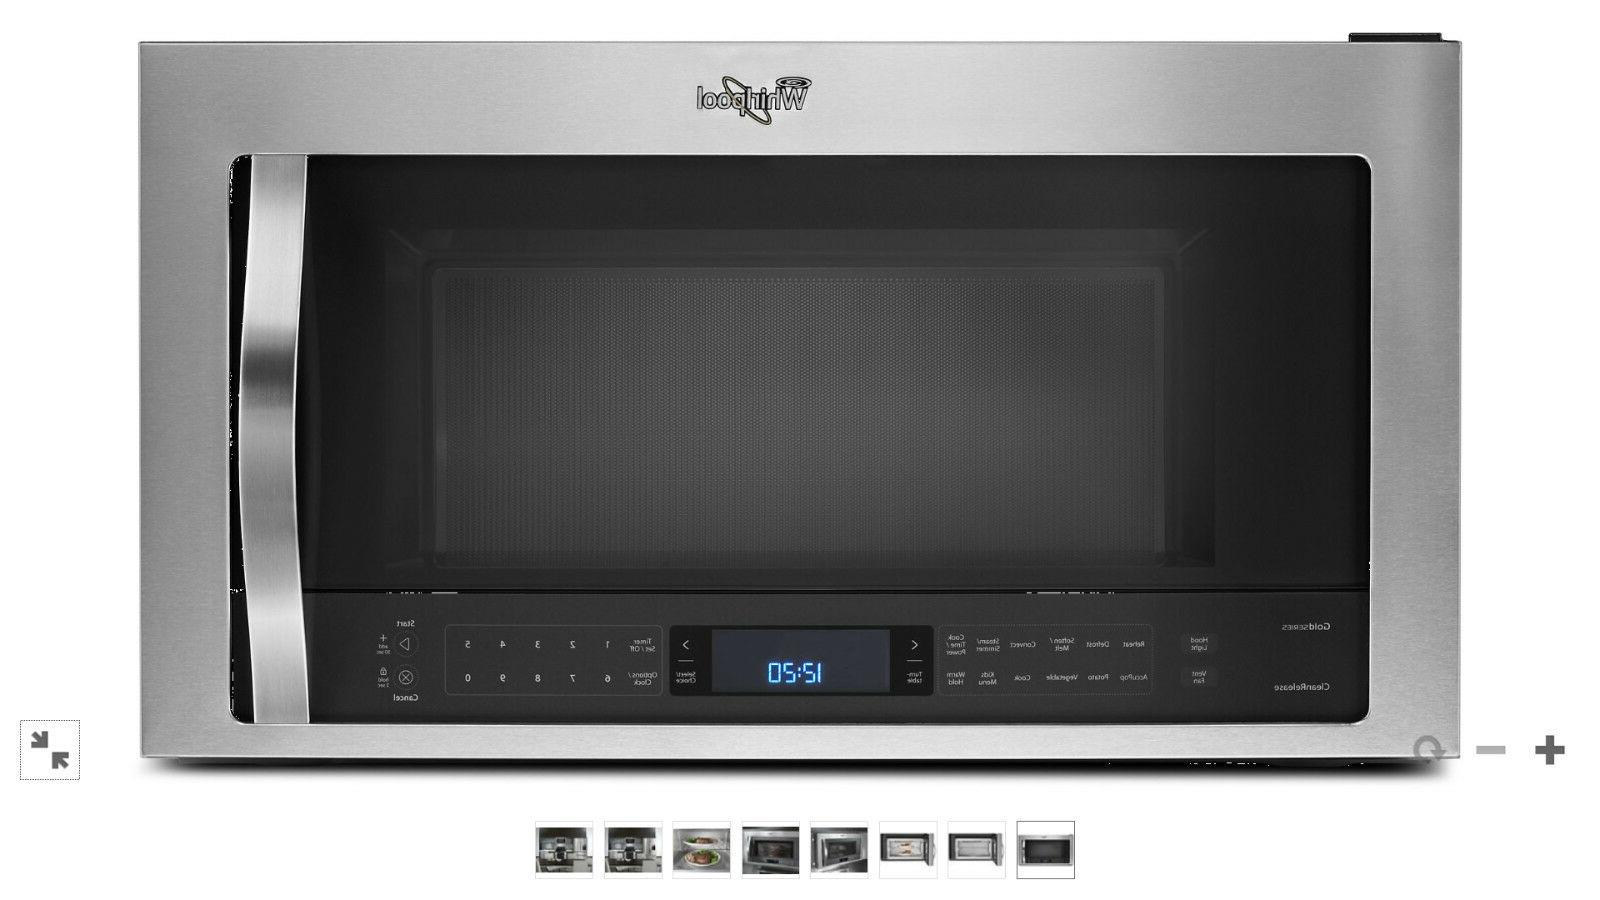 convection microwave combo oven1 9 cf over